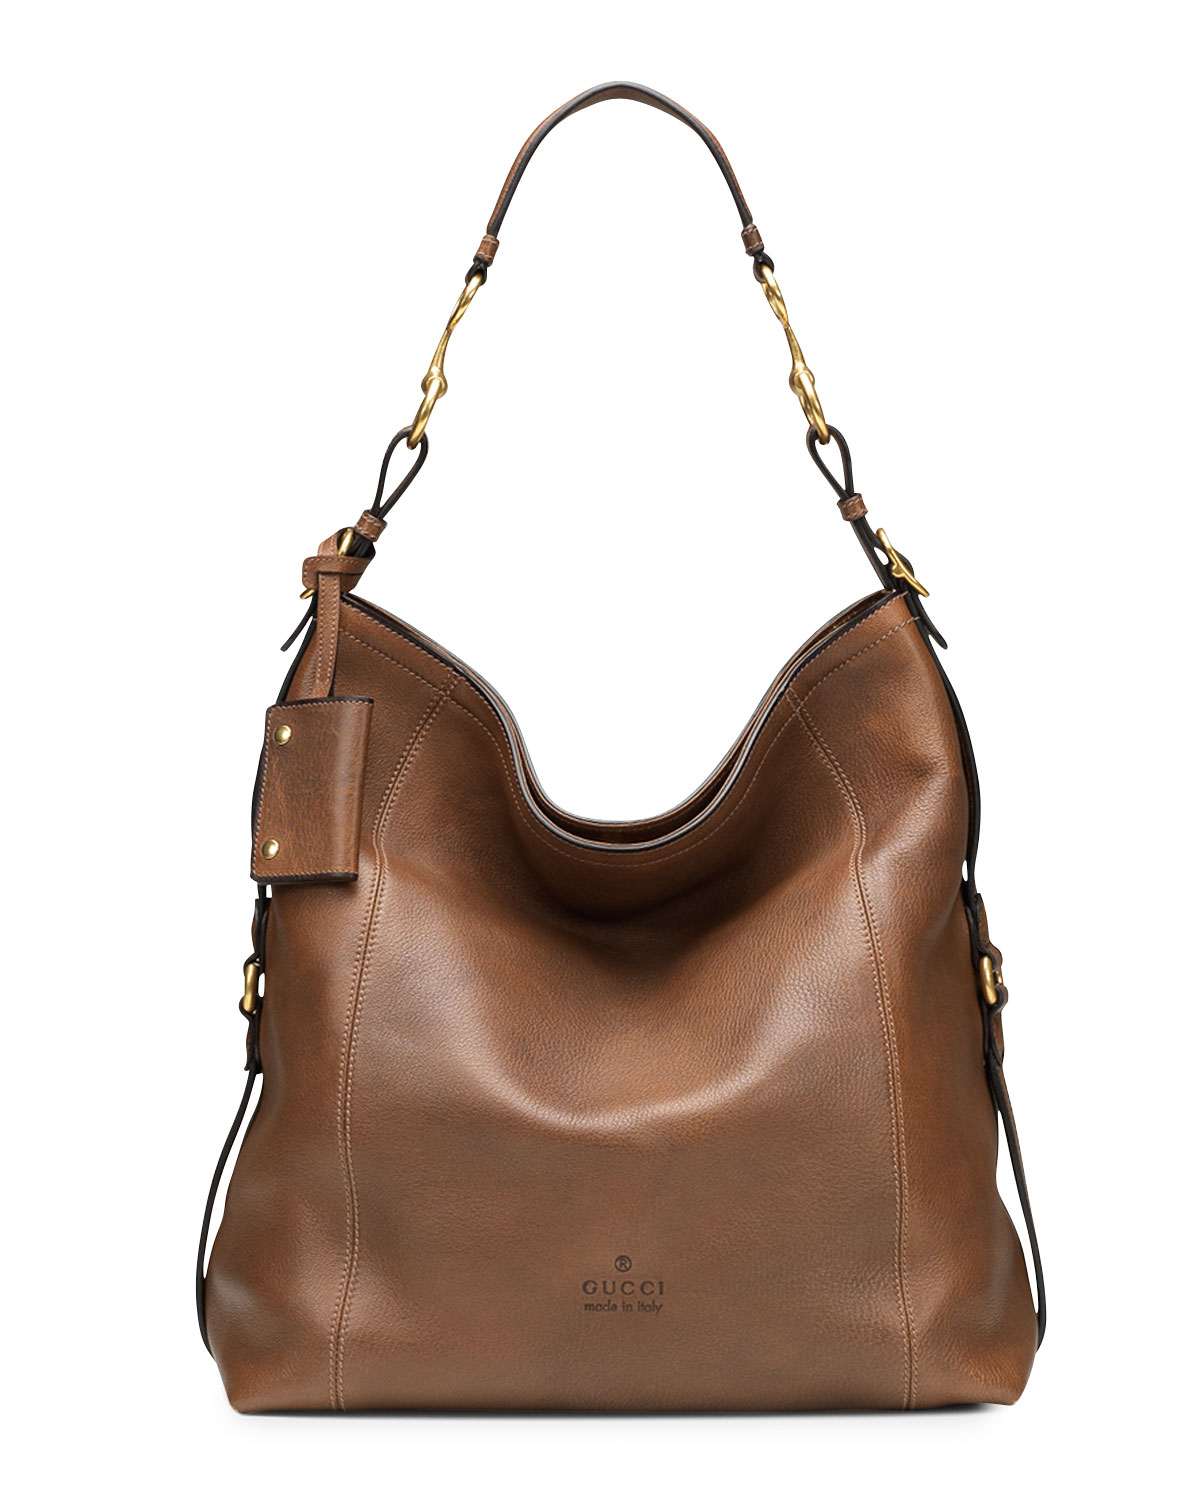 Lyst - Gucci Harness Leather Hobo Bag in Brown c3d700aec